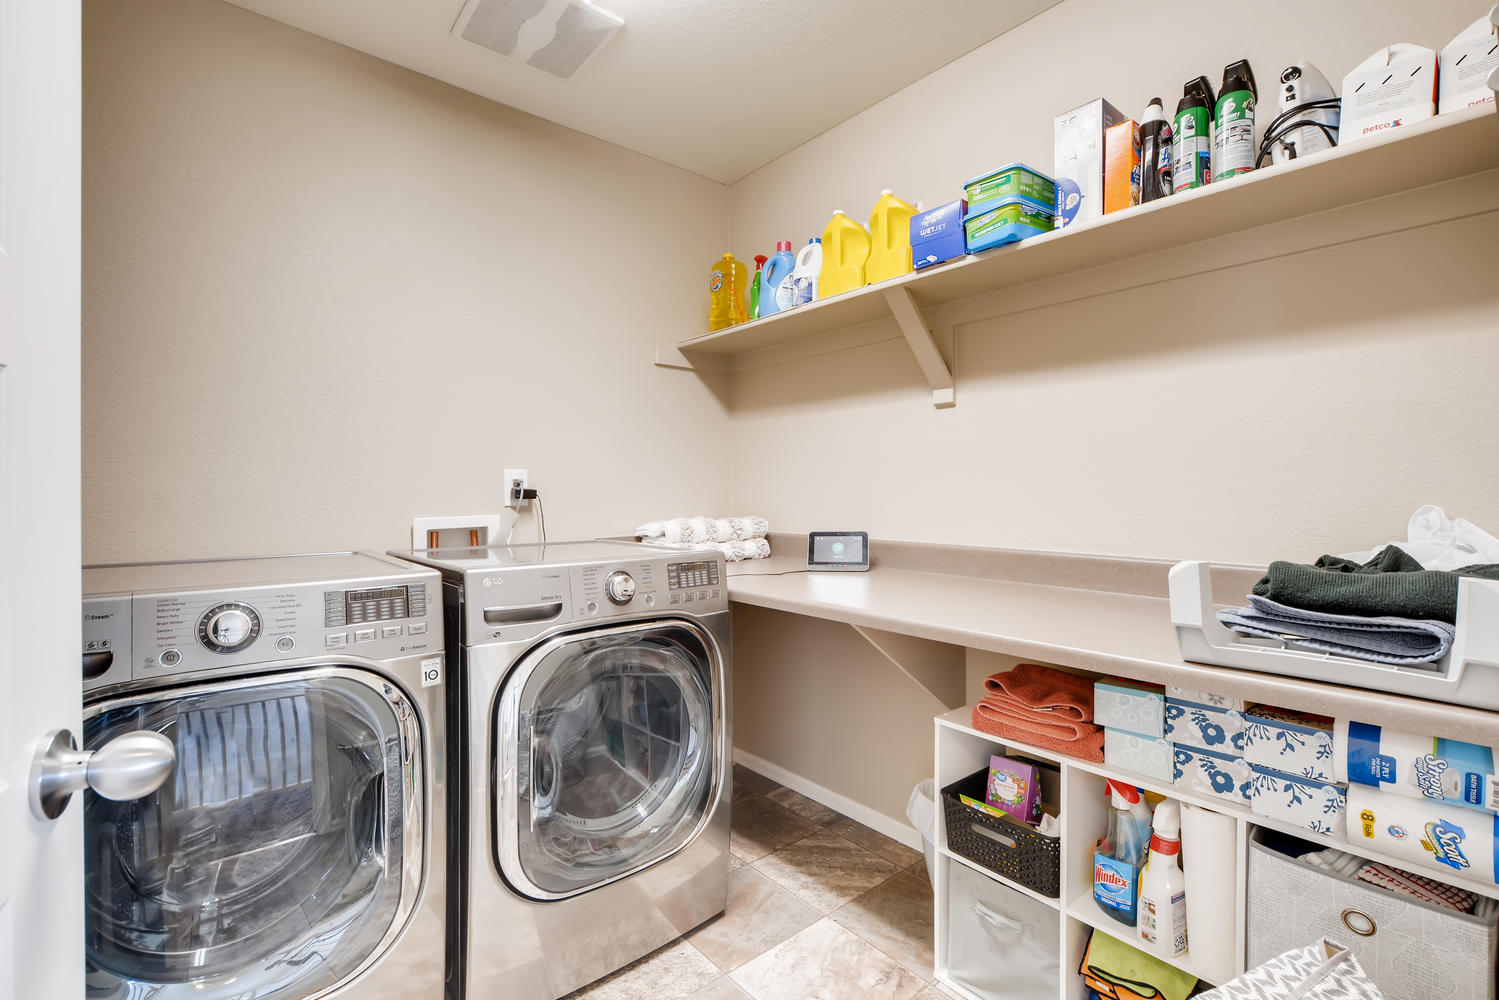 REAL ESTATE LISTING: 2182 Steppe Dr Longmont Laundry Room